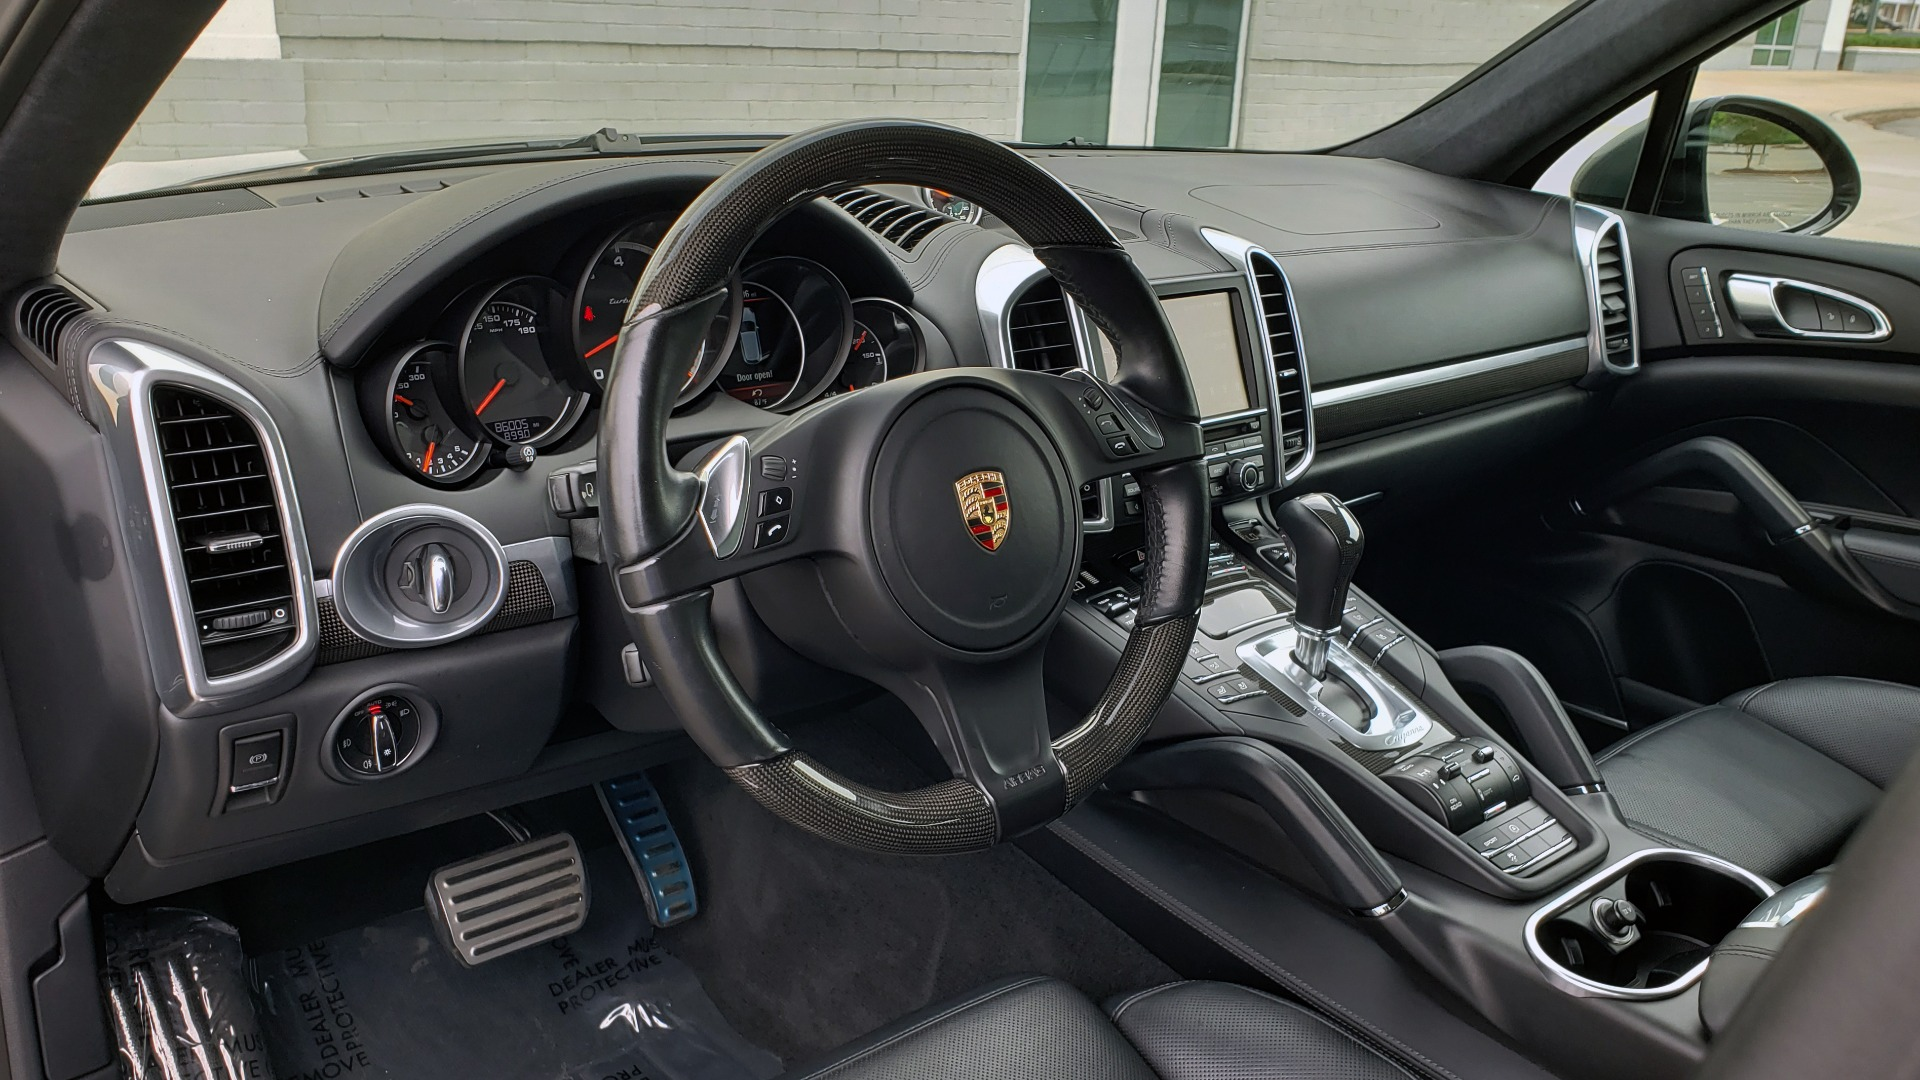 Used 2014 Porsche CAYENNE TURBO S / AWD / NAV / BOSE / PANO-ROOF / LCA / REARVIEW for sale Sold at Formula Imports in Charlotte NC 28227 44